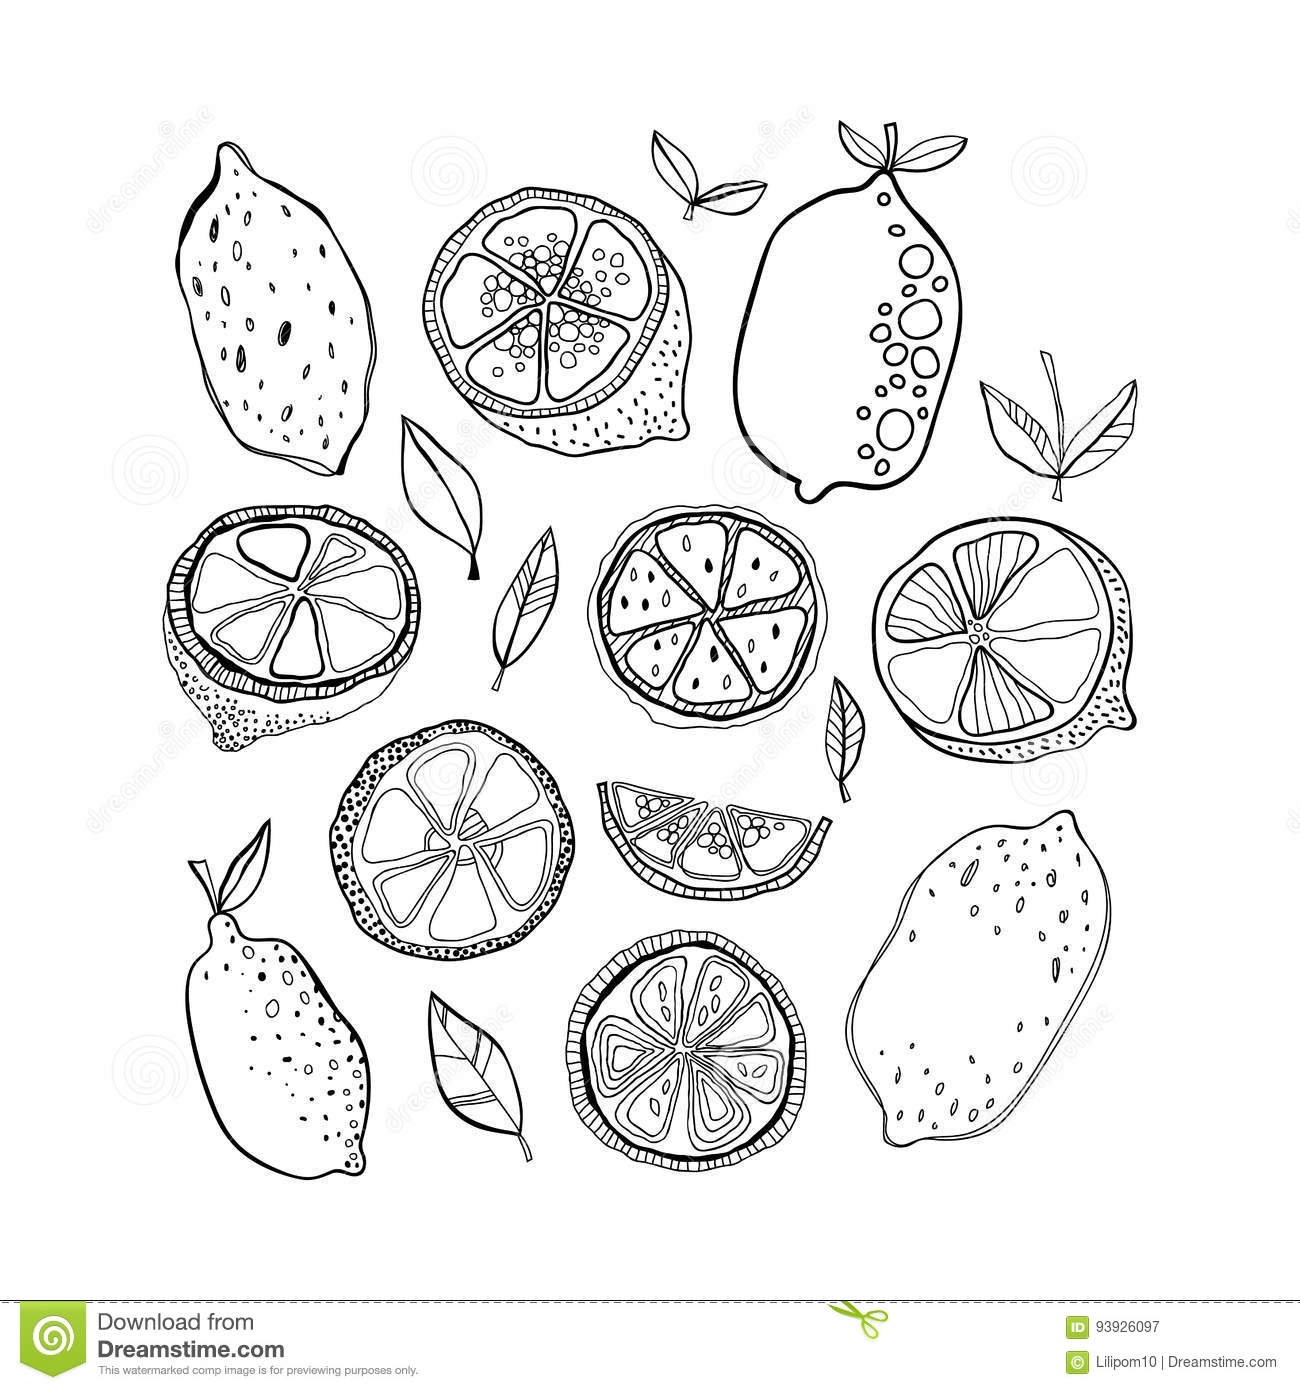 Royalty Free Vector Download Lemons Black And White Citrus Fruits For Coloring Pages